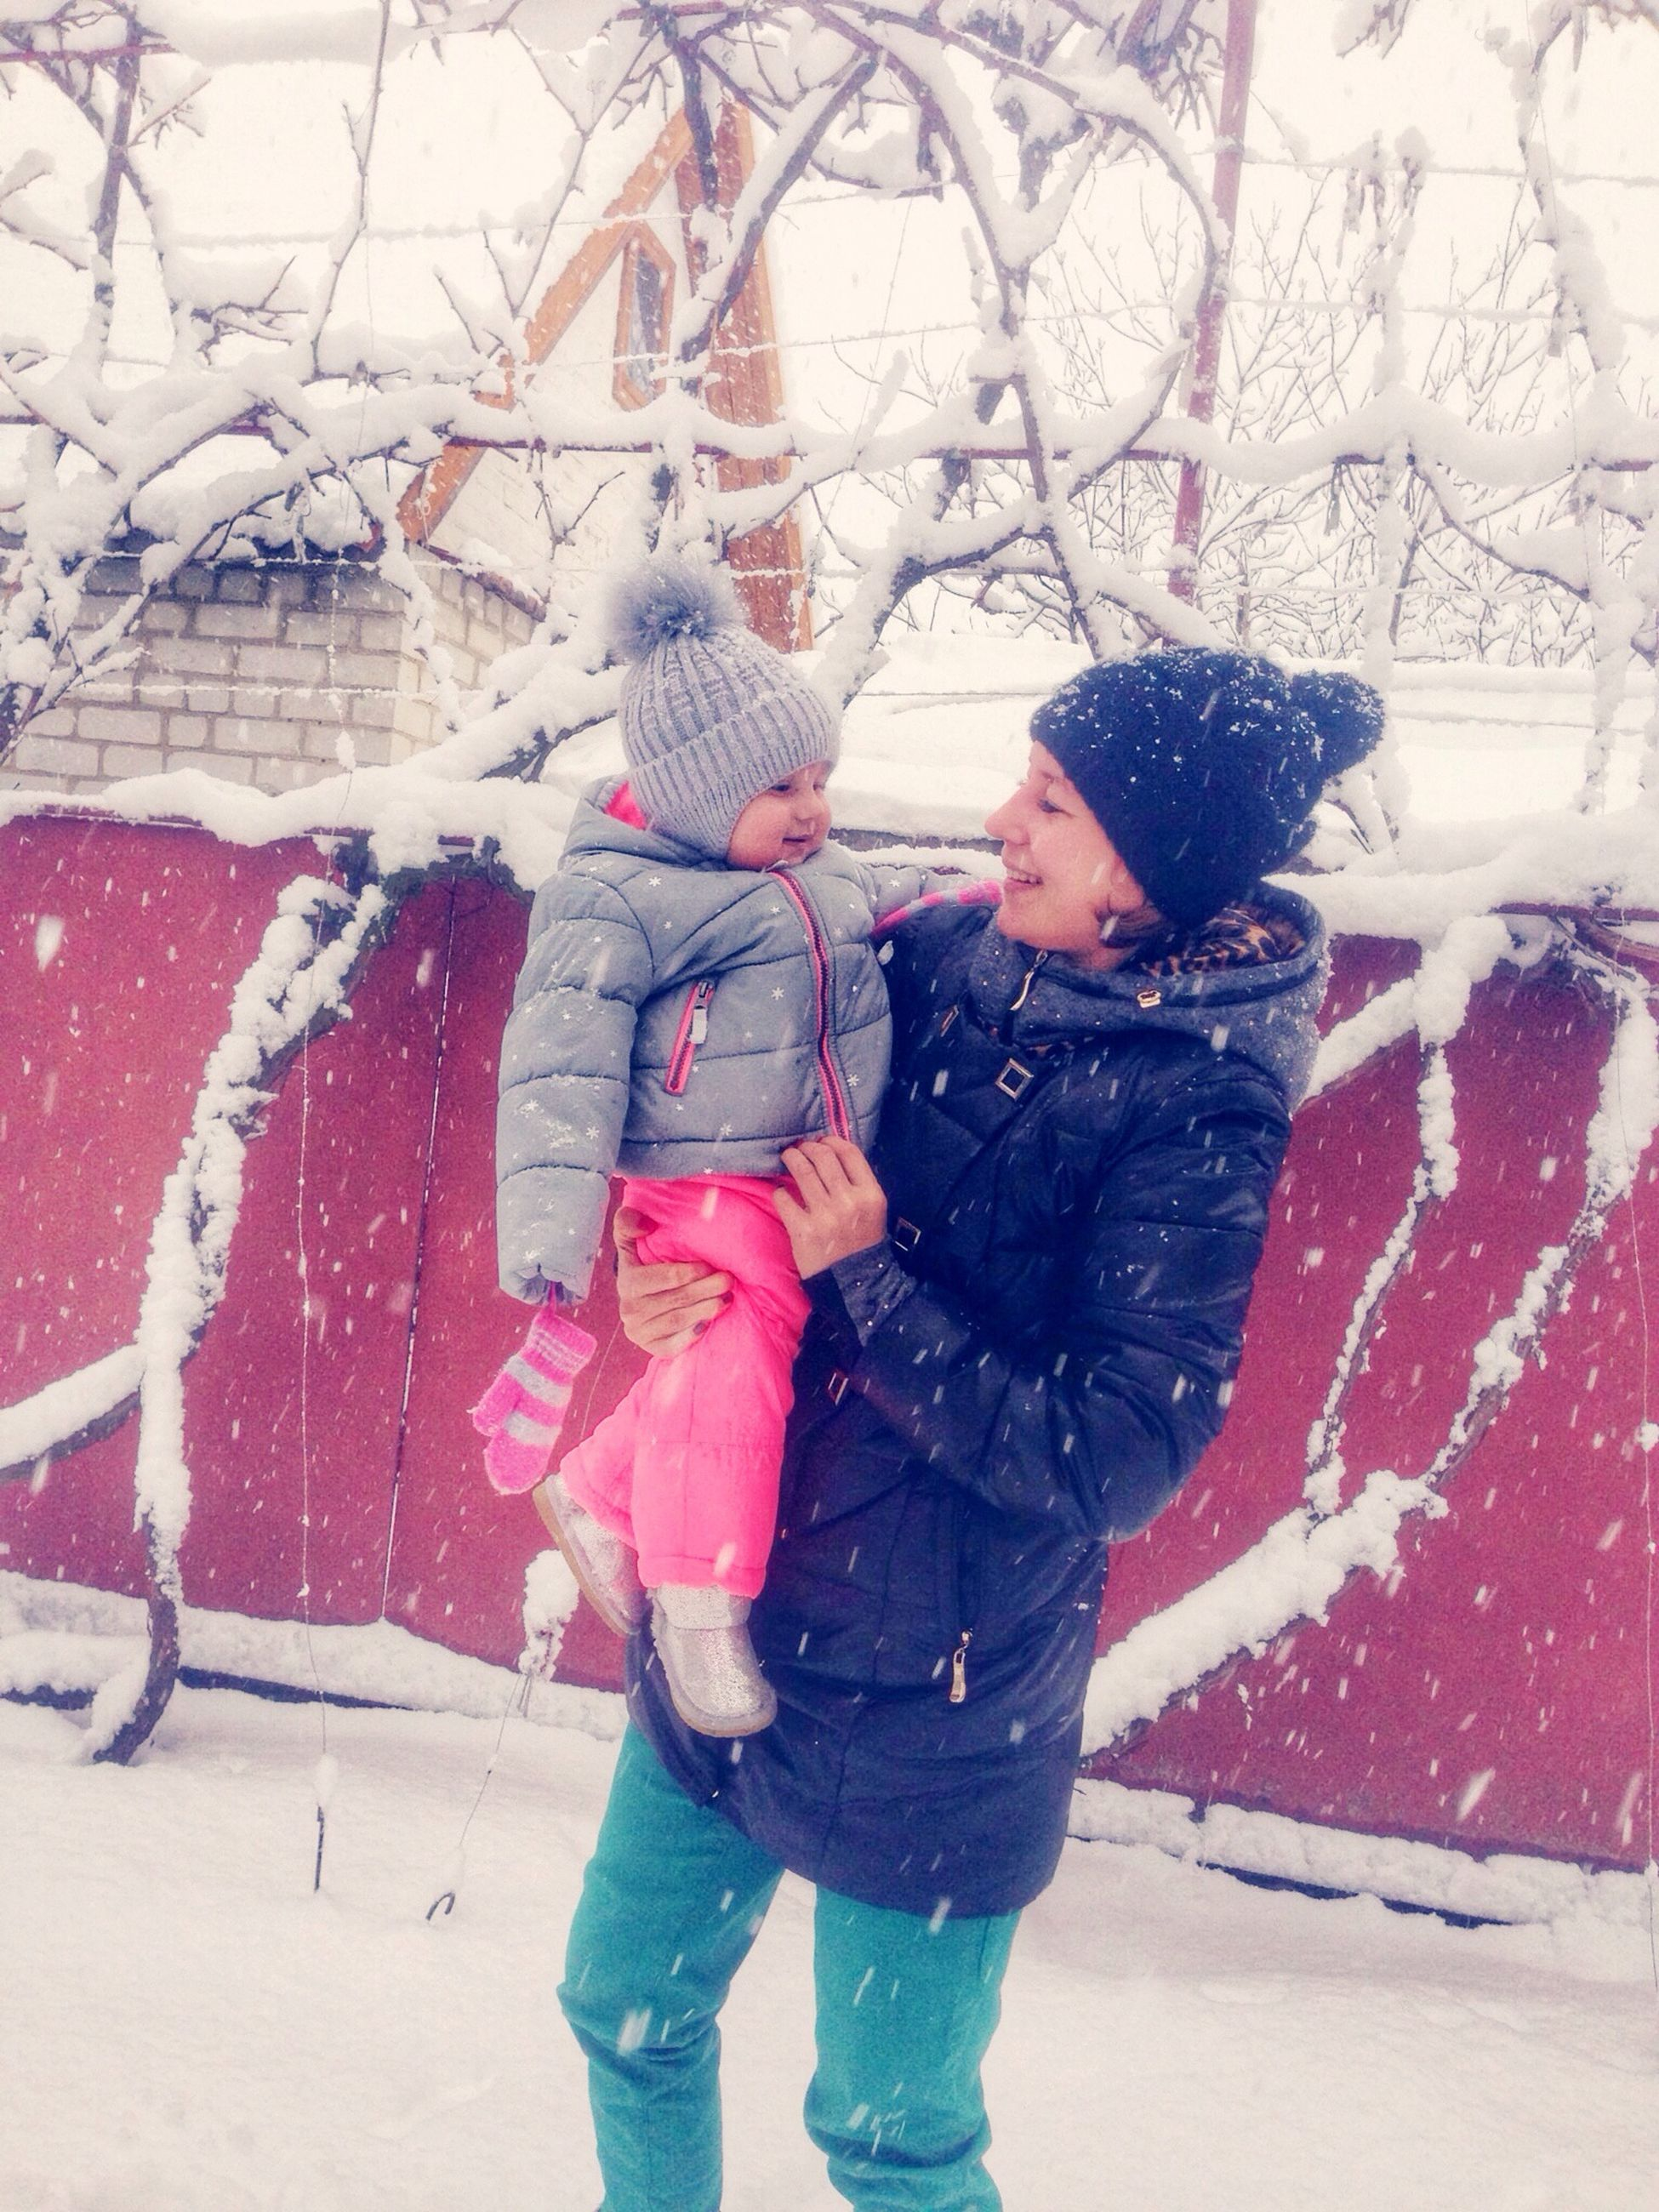 lifestyles, winter, leisure activity, casual clothing, cold temperature, full length, season, snow, standing, warm clothing, holding, person, childhood, girls, three quarter length, front view, weather